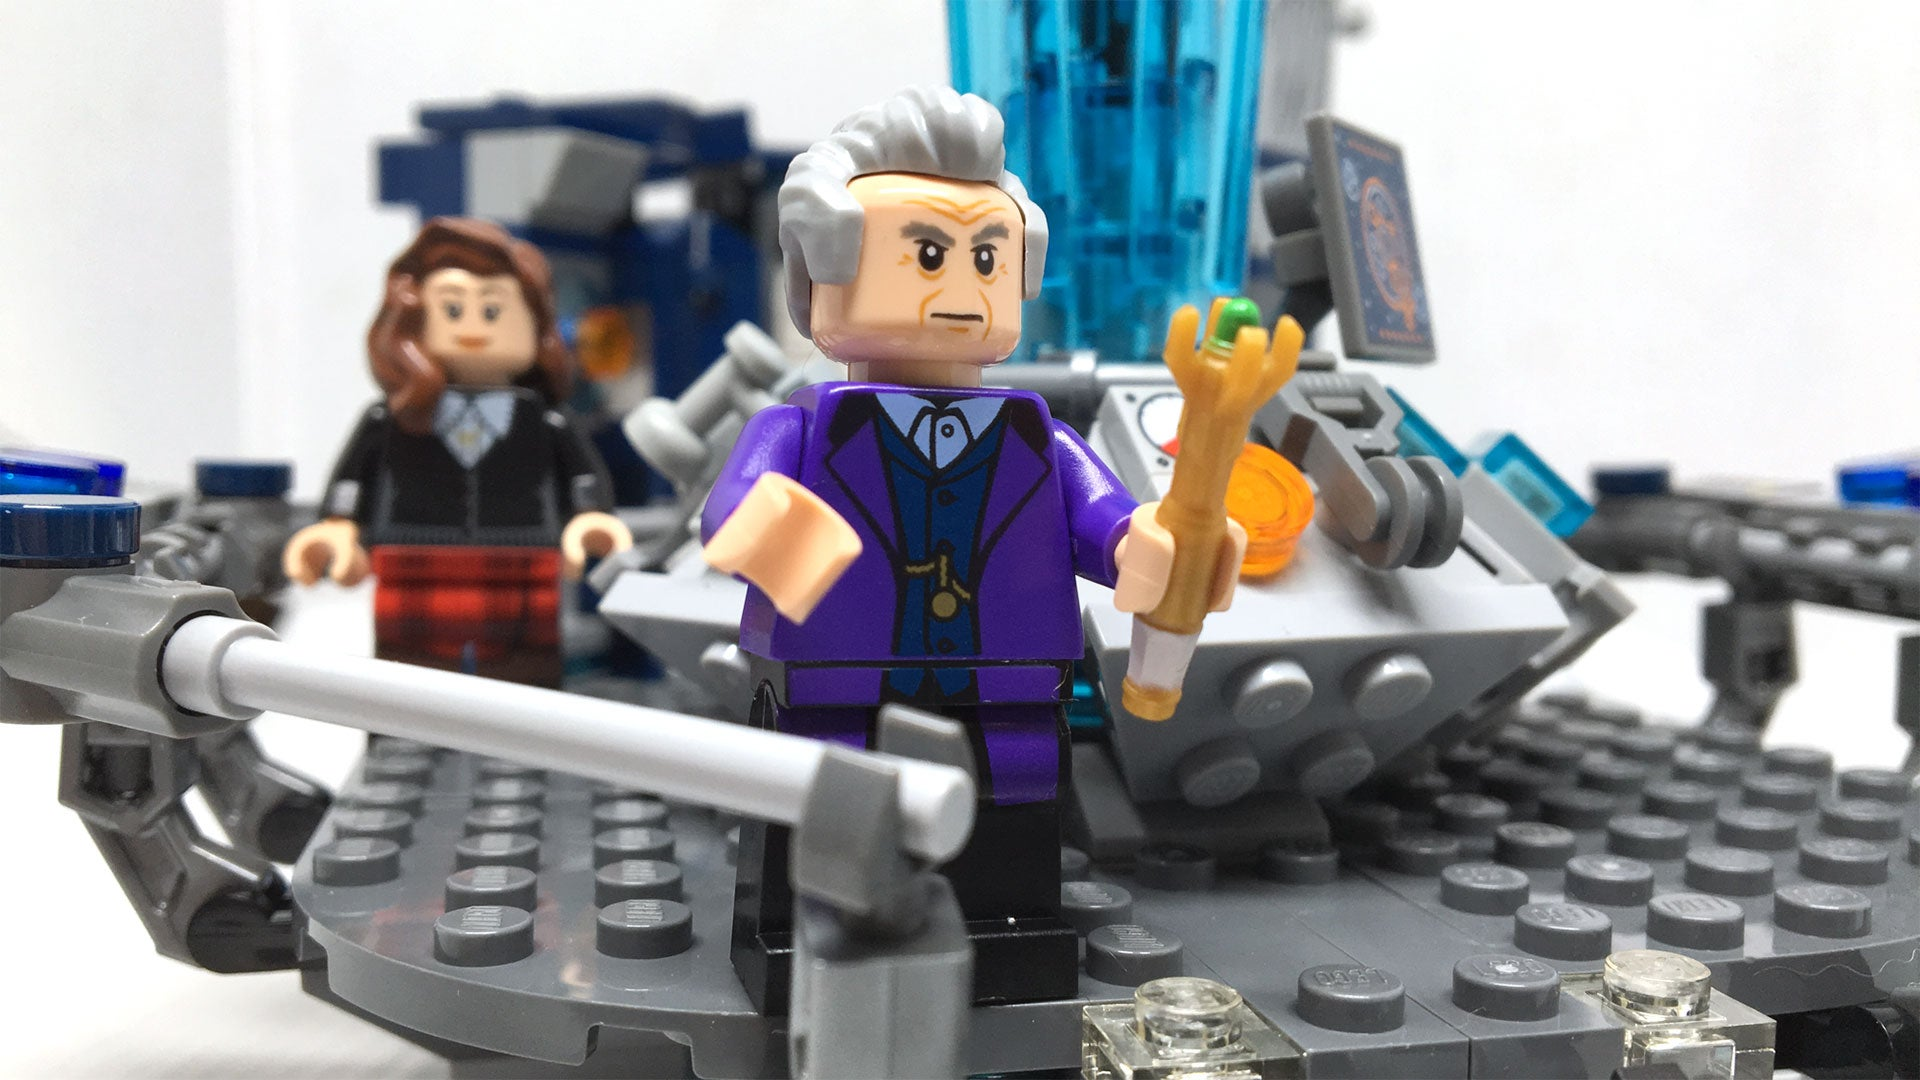 TheDoctor Who LEGO Set: What Took You So Long, Old Man?